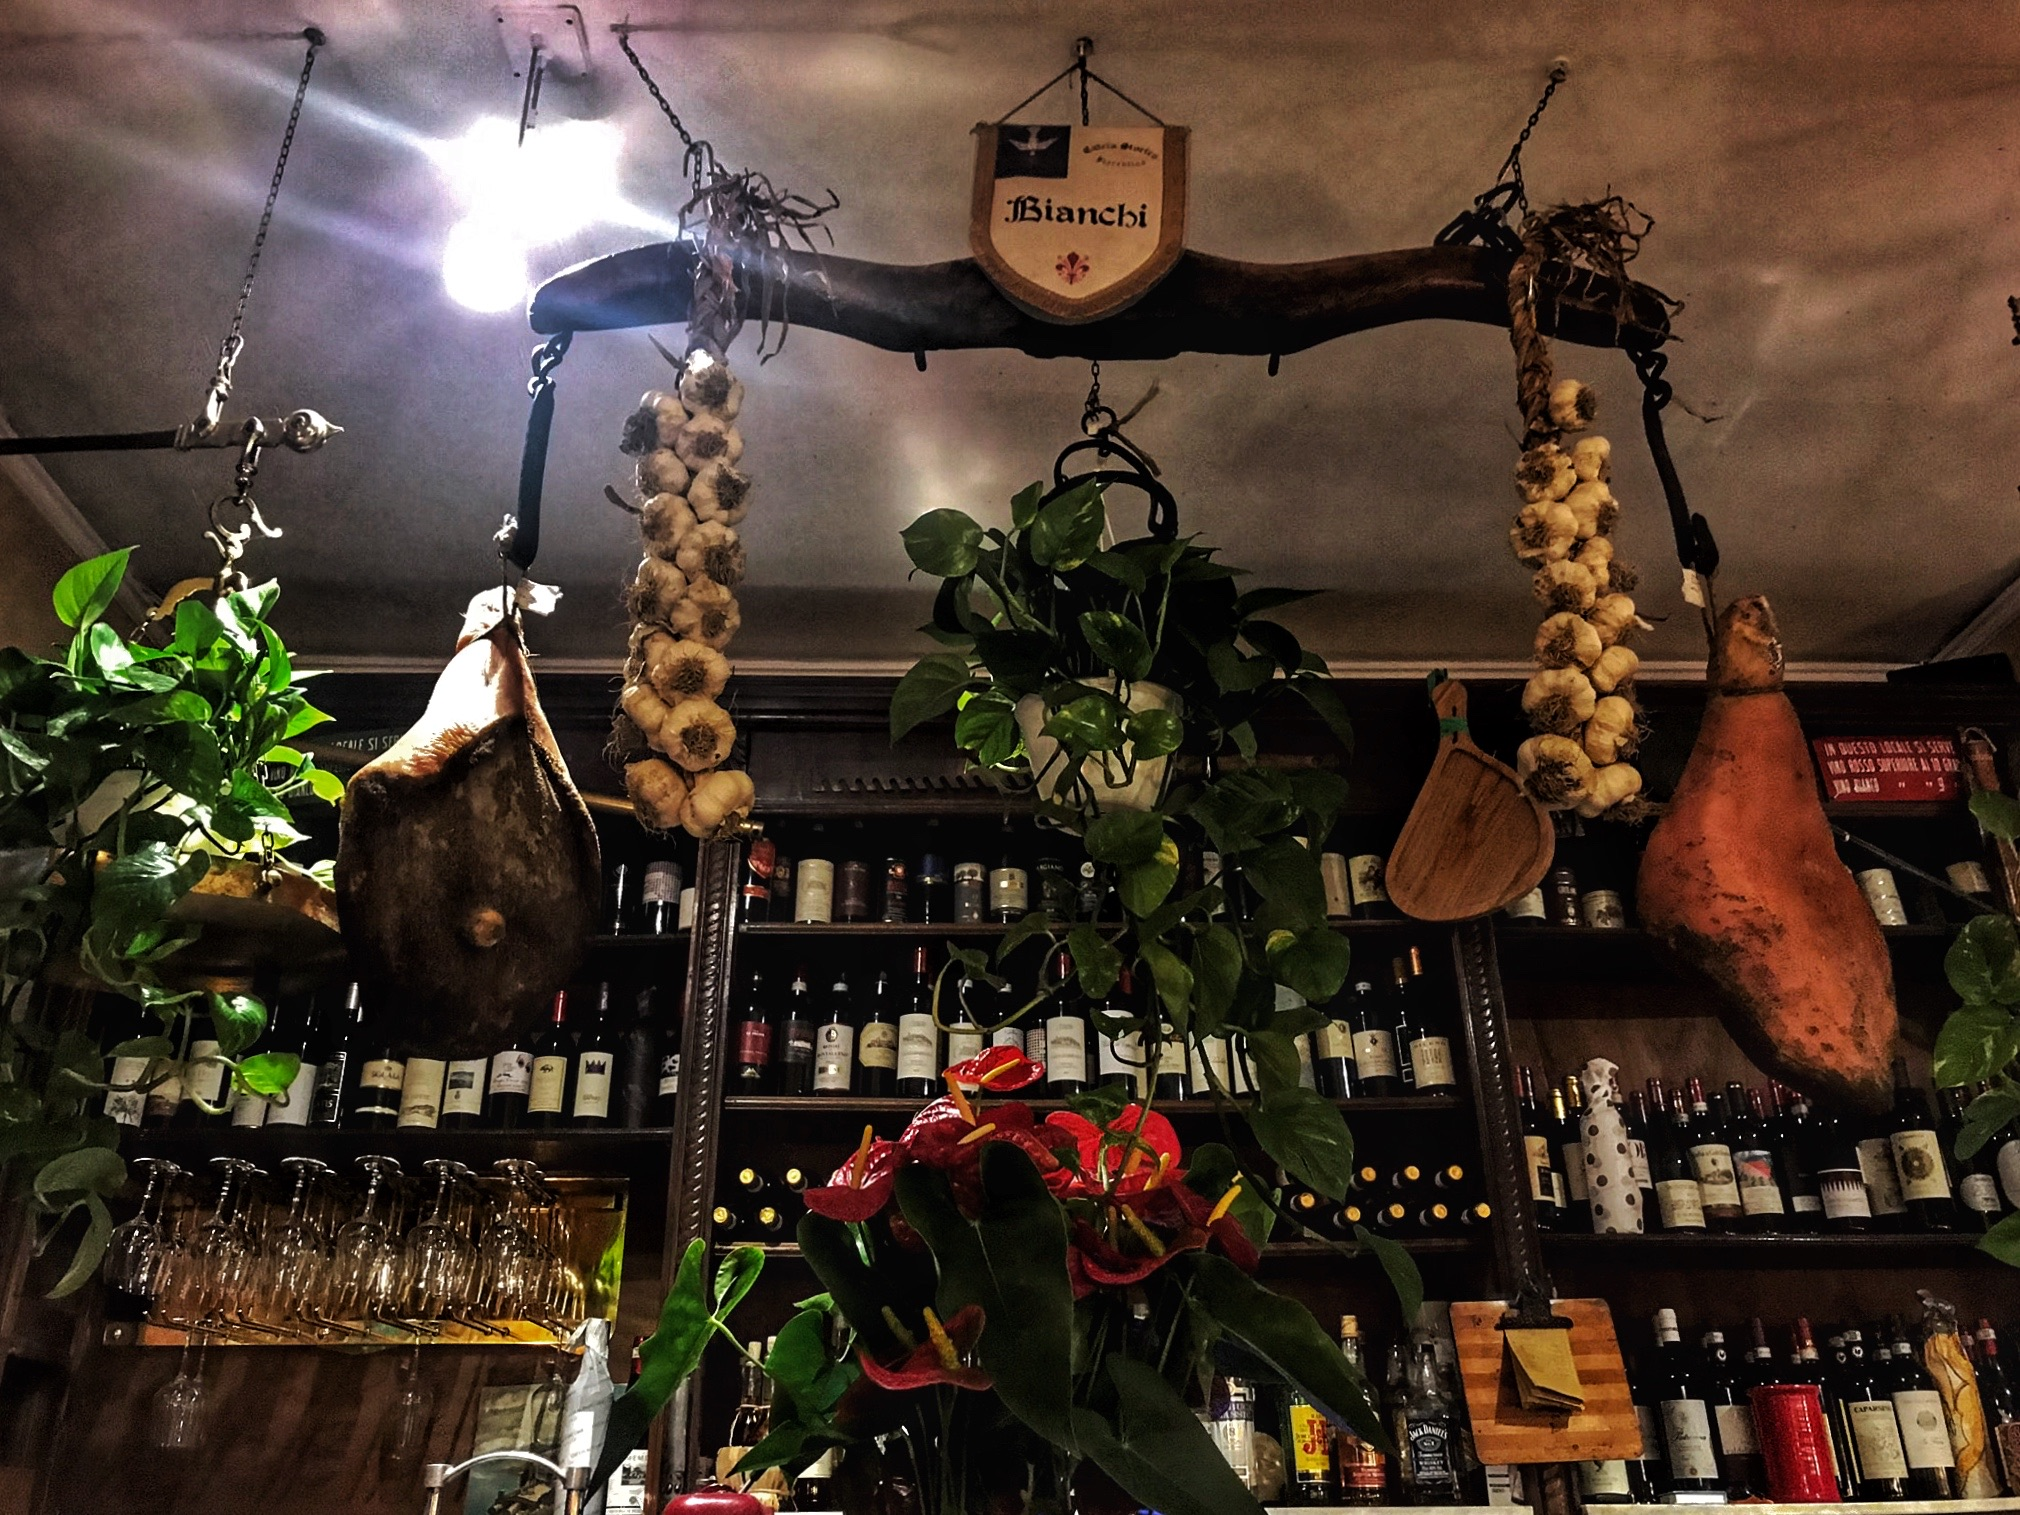 The interior of the All Vecchia Bertola – an authentic Tuscan restaurant in Florence!